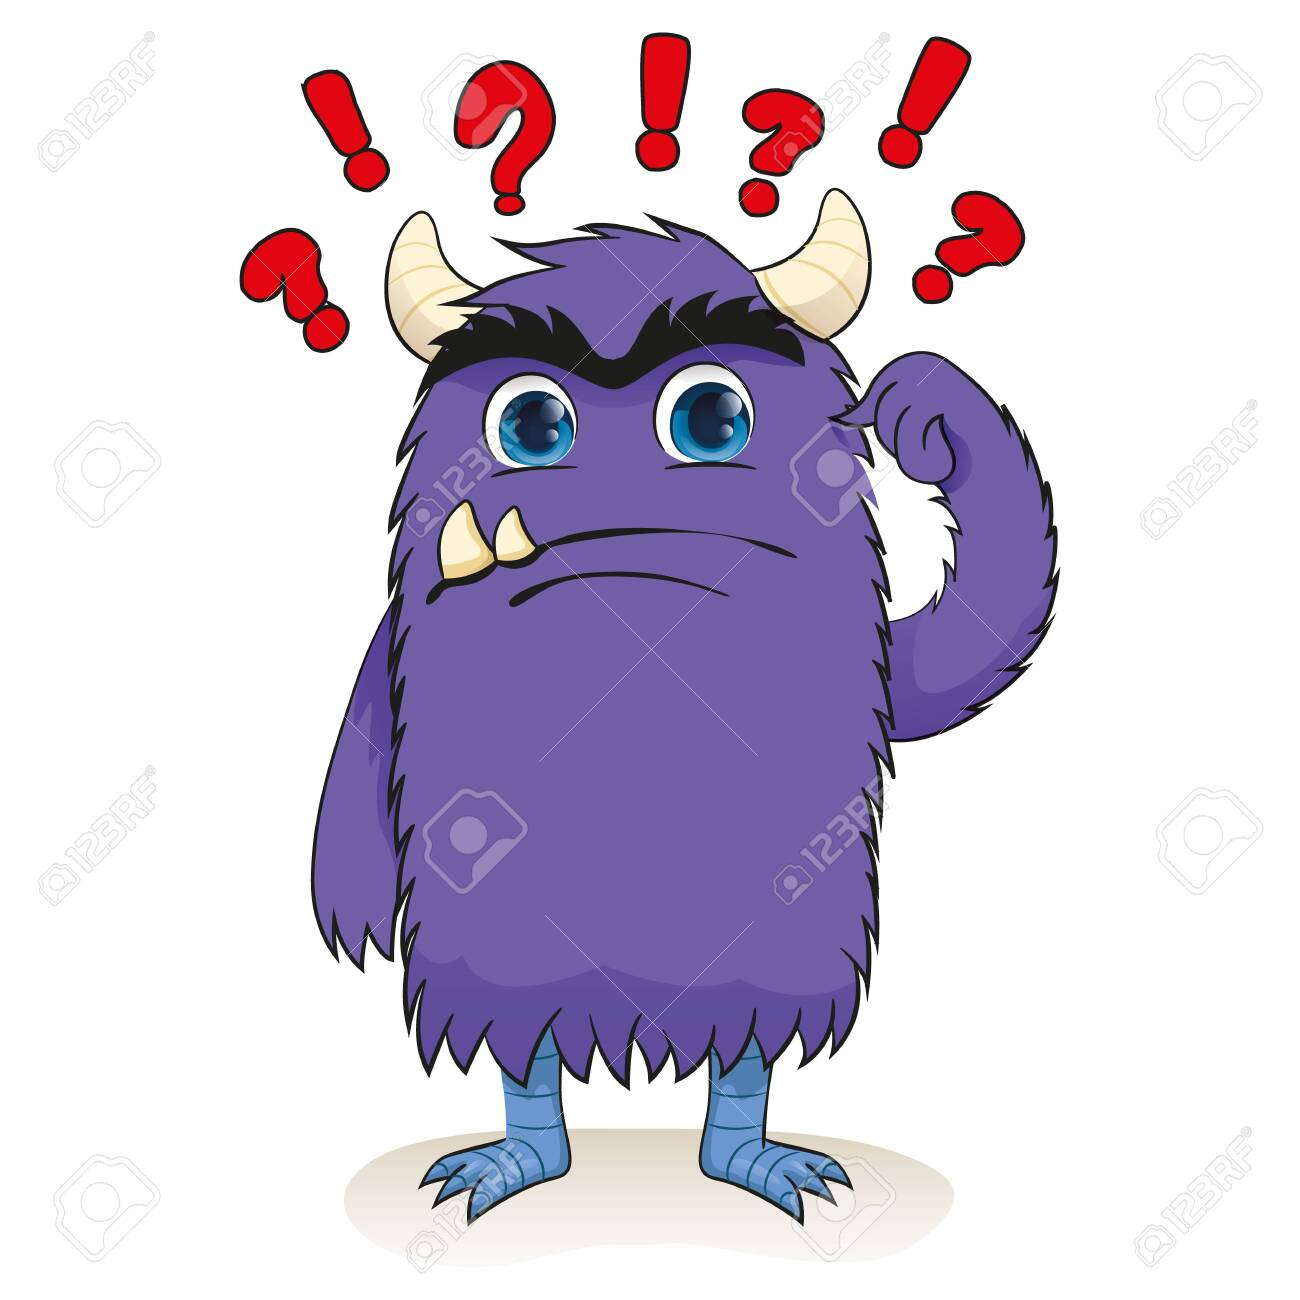 Cartoon of a little monster, charismatic purple, confused. Ideal for educational and institutional materials - 138365535